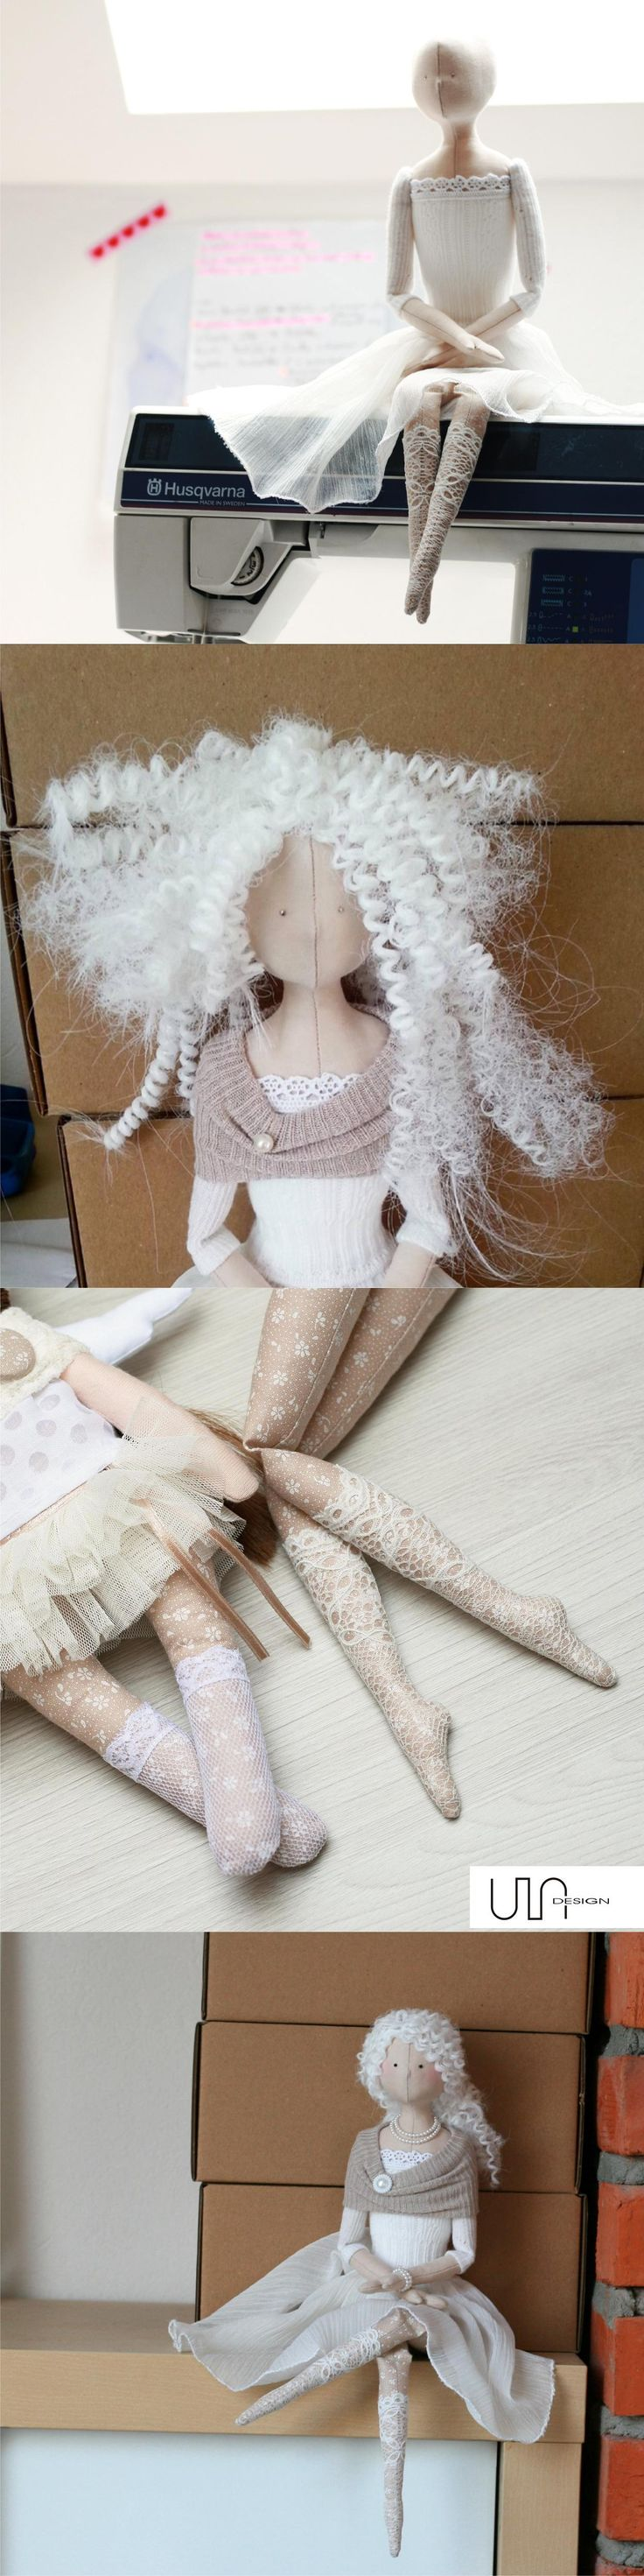 work in progress doll tilda